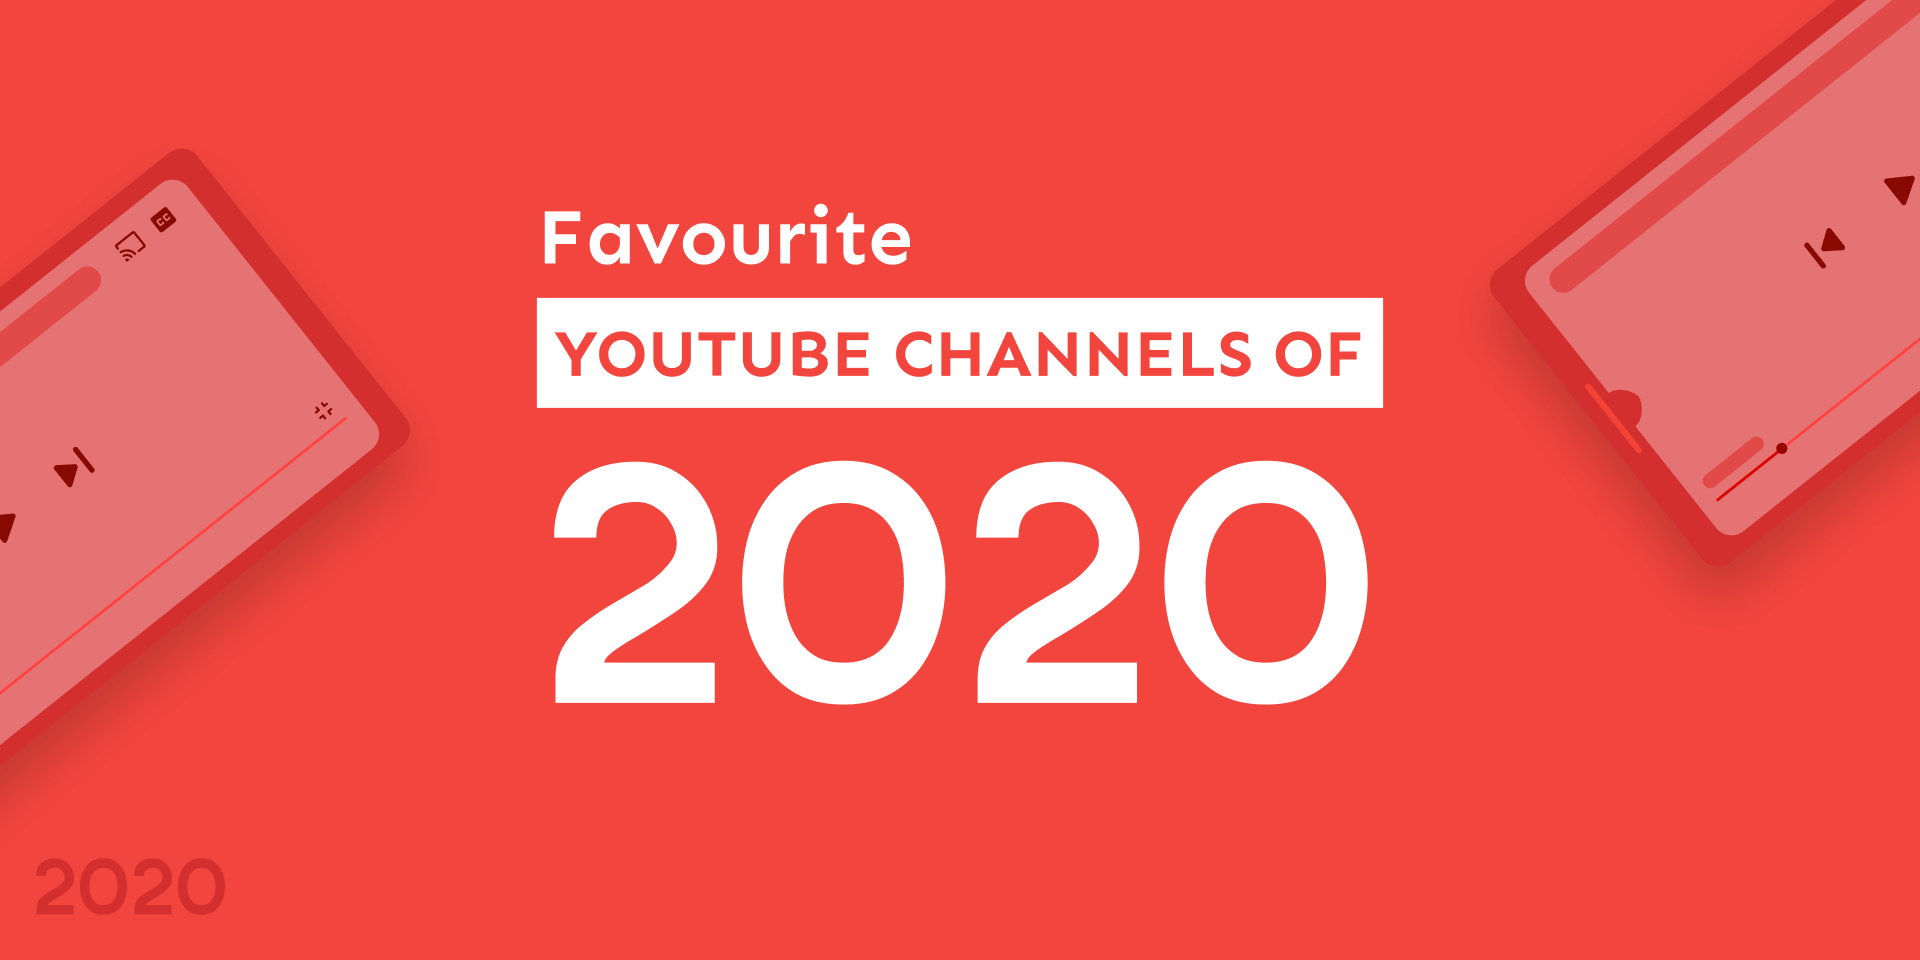 Favourite YouTube Channels of 2020